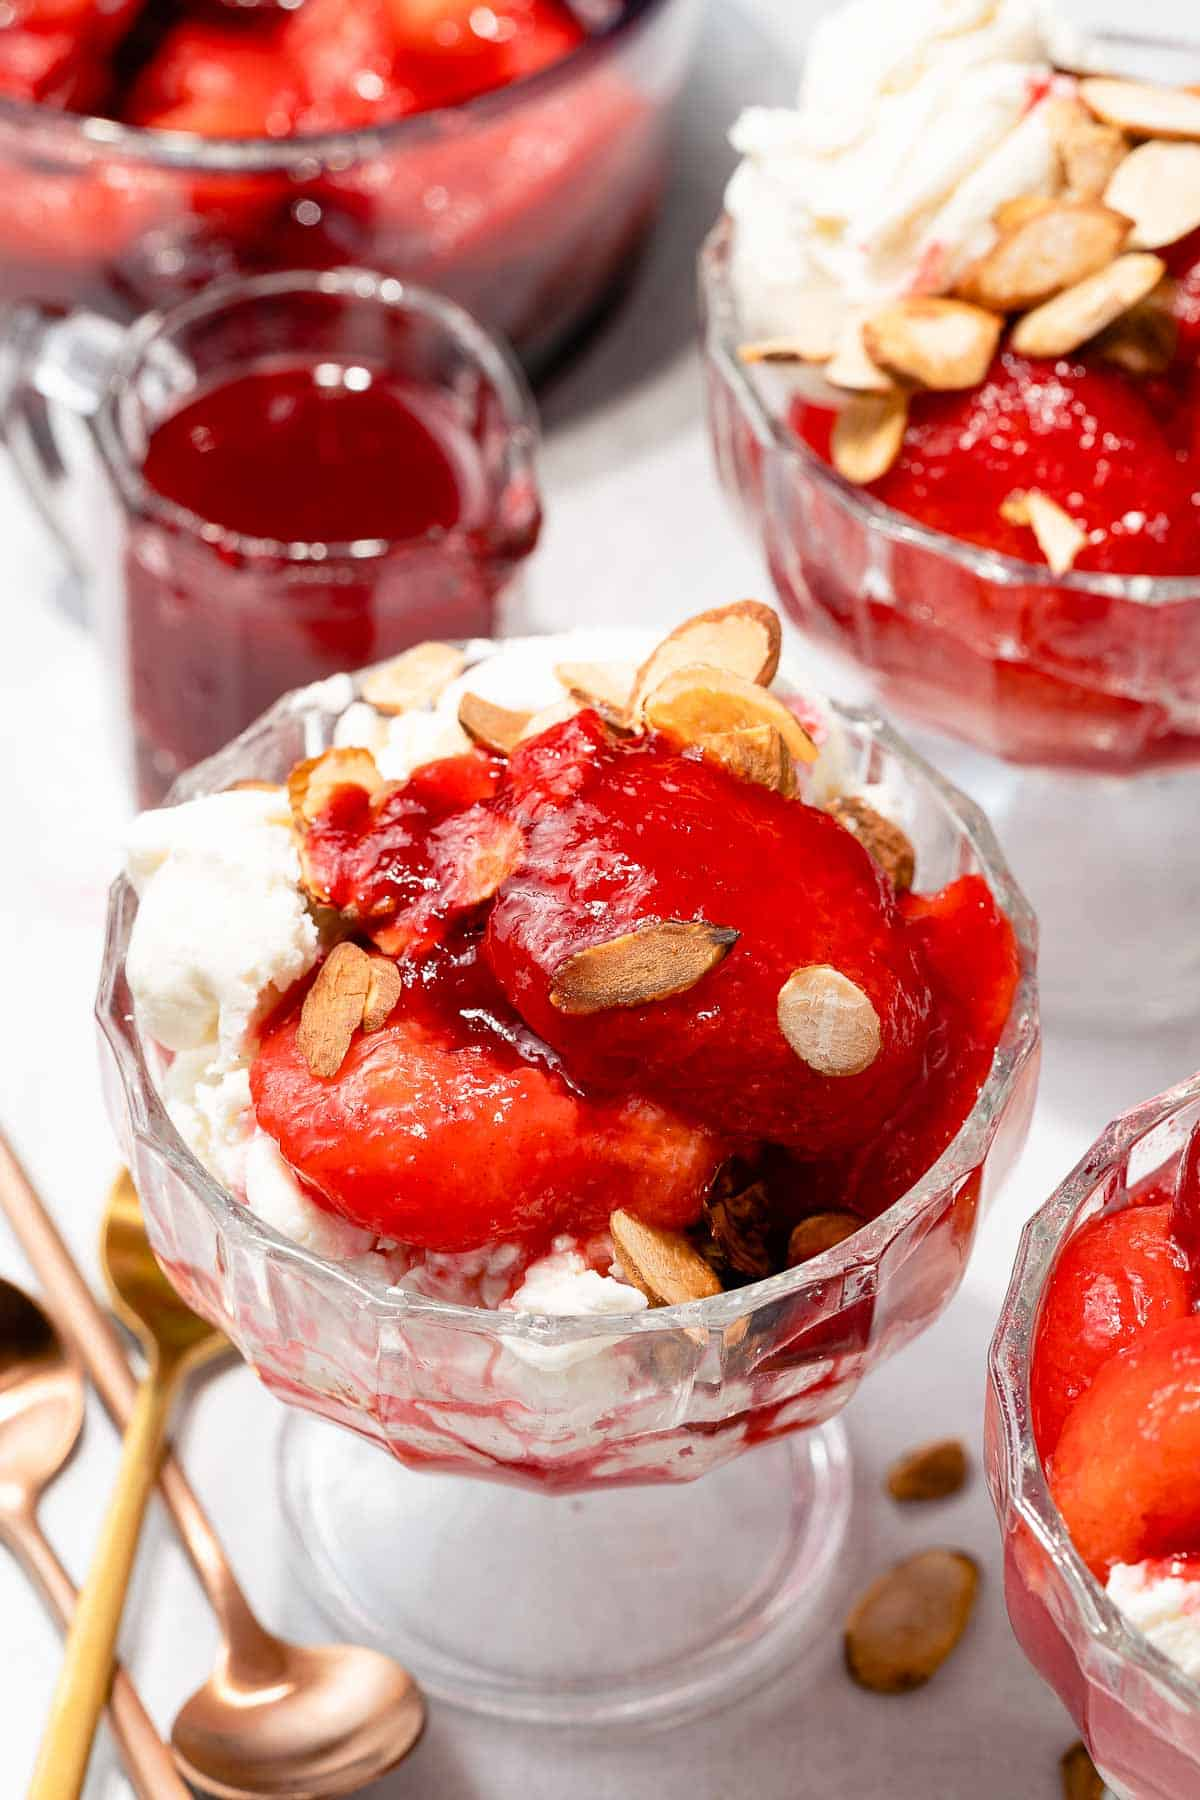 stewed plums on ice cream with sauce on the side